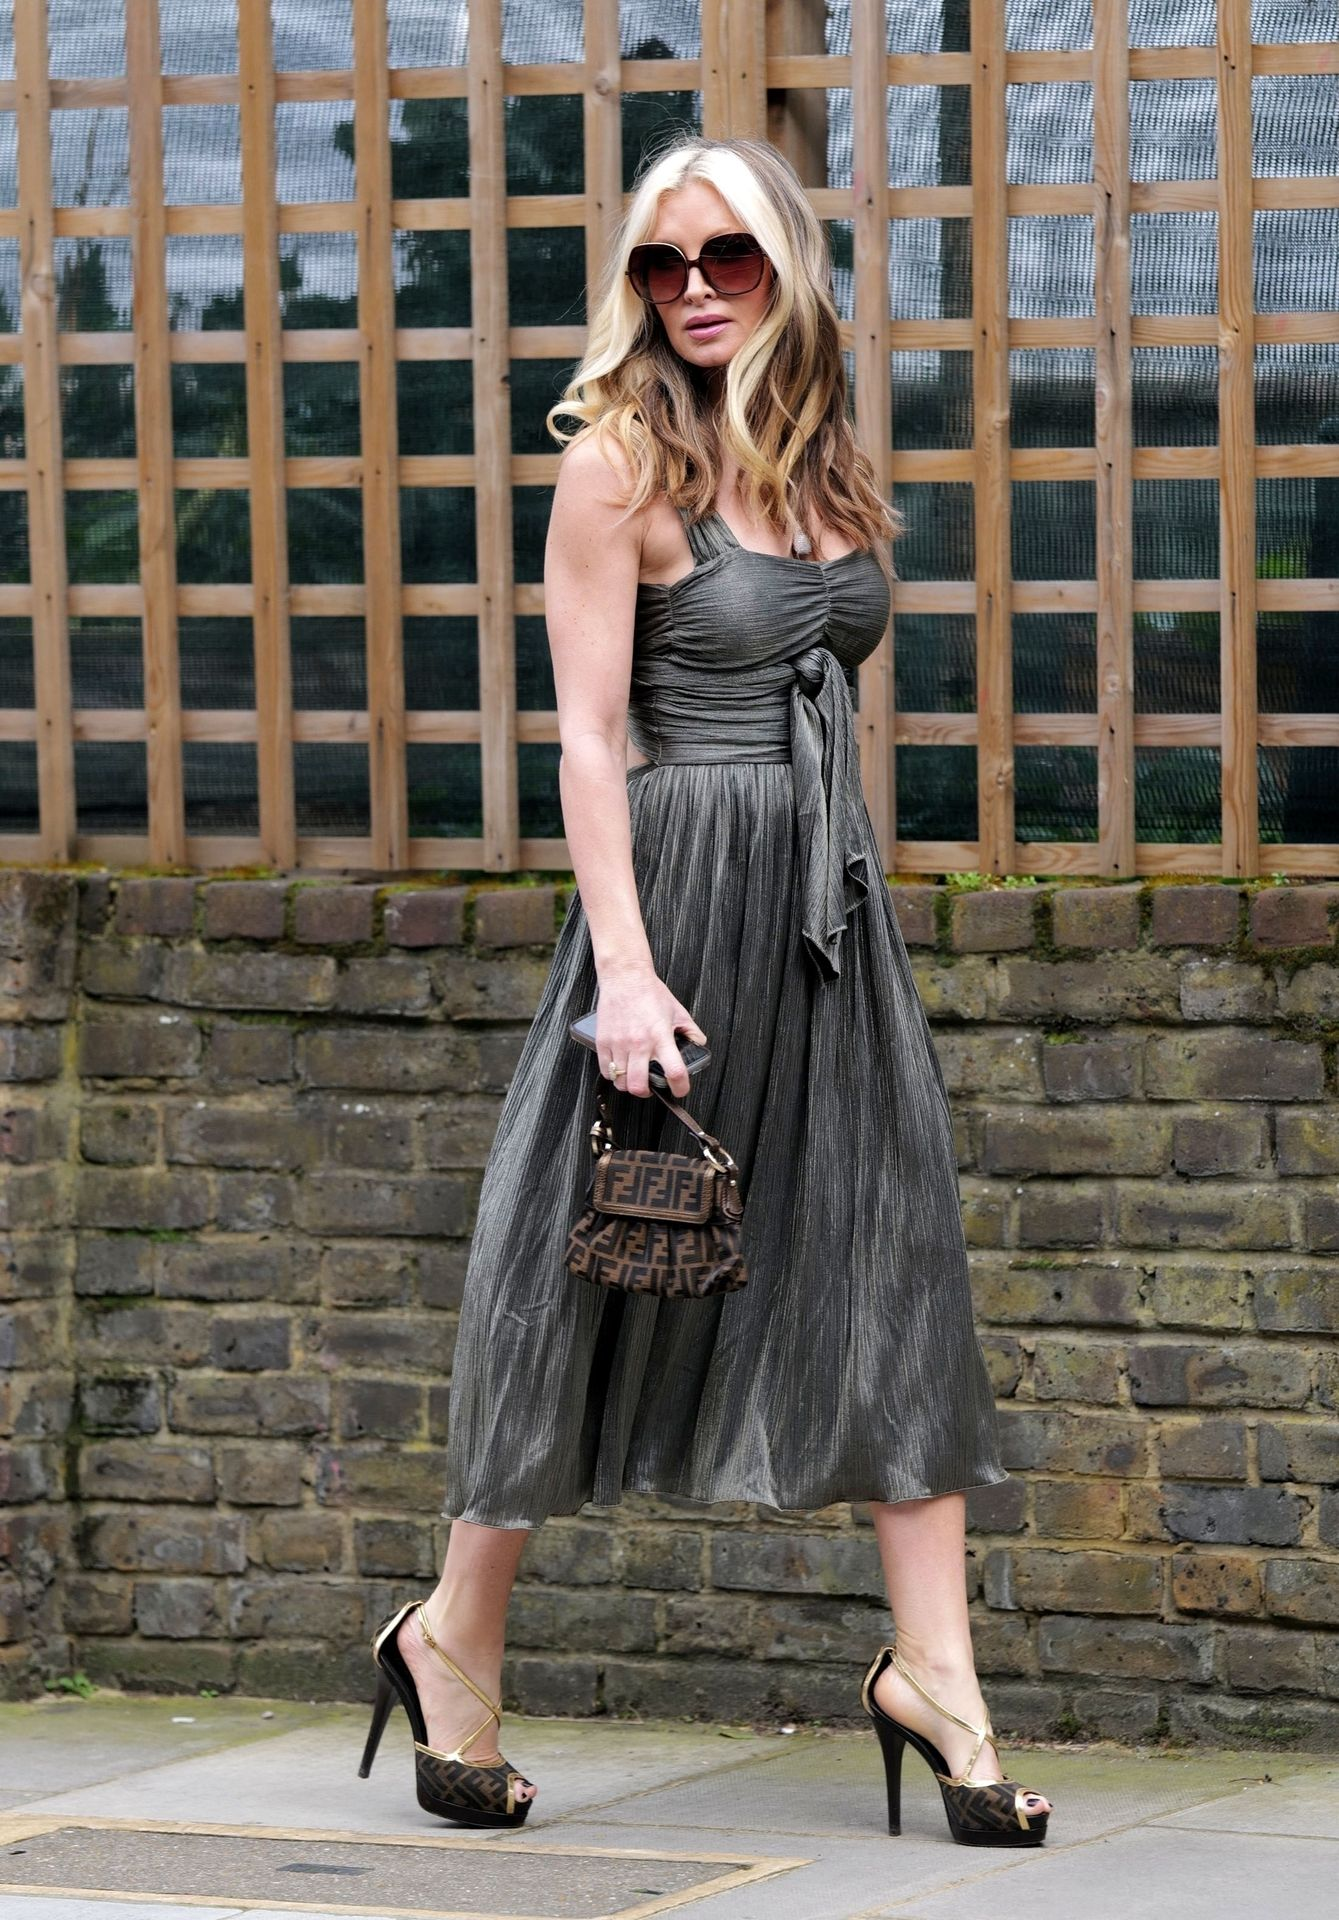 Caprice Bourret Steps Out Looking Glamorous In London 0005